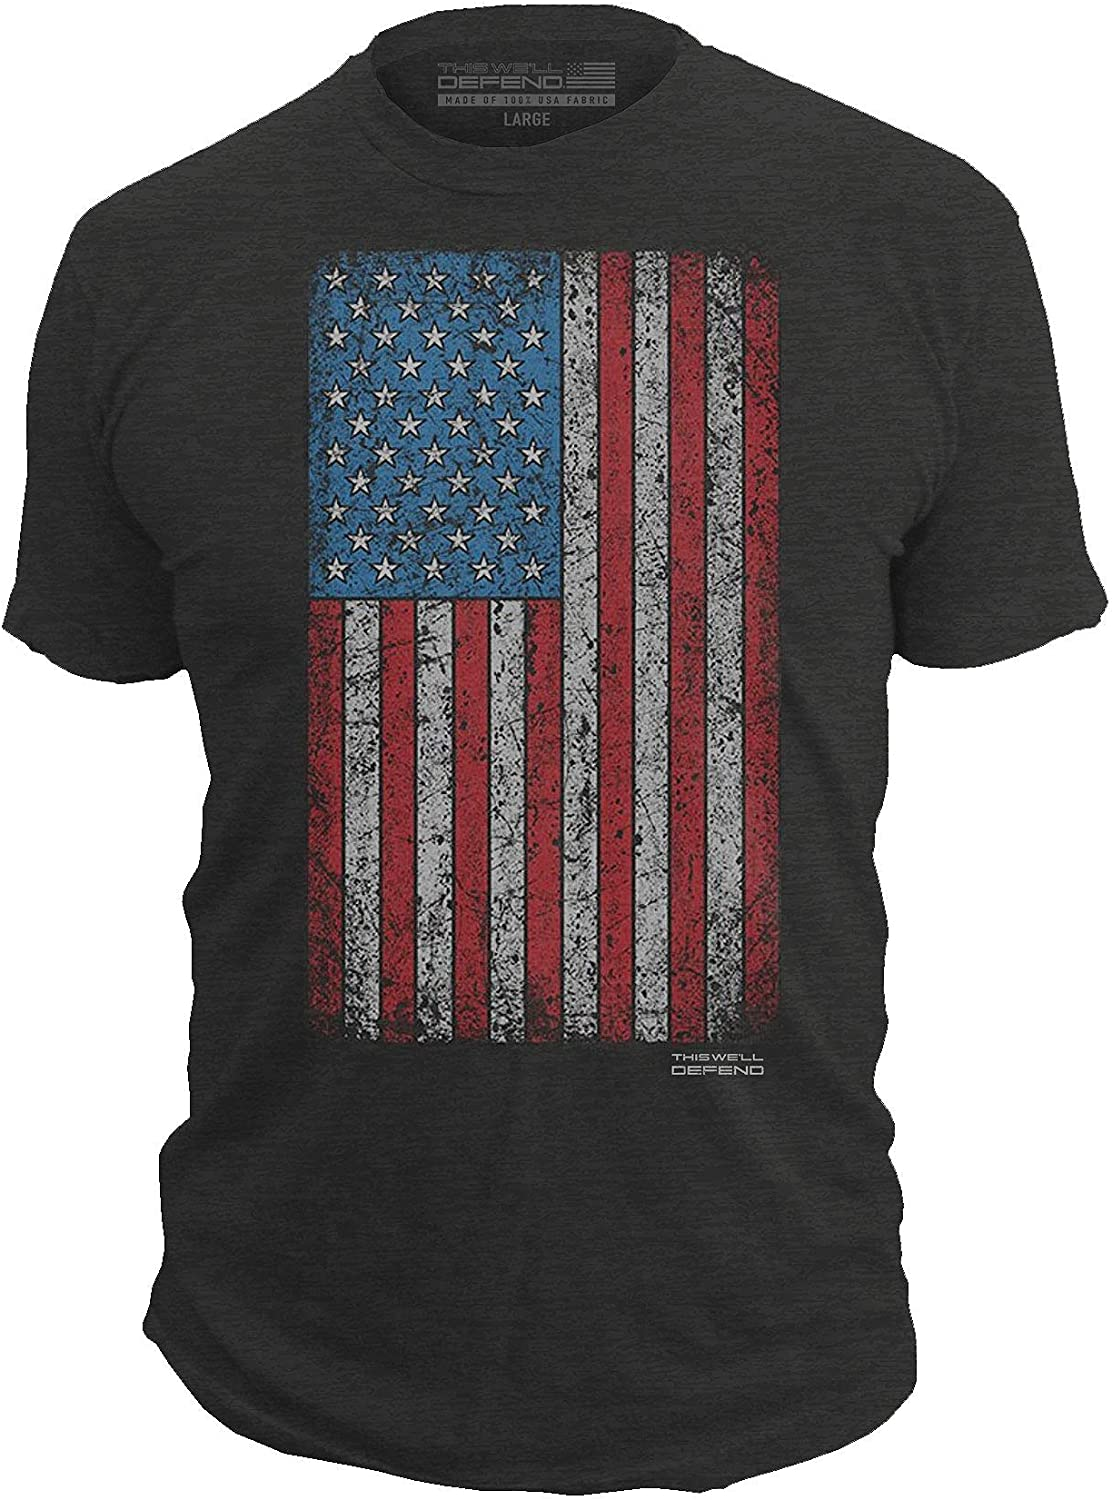 This We'll Defend - Vintage American Flag - Made of USA - Mens 52/48 Premium T-Shirt, Black Heather